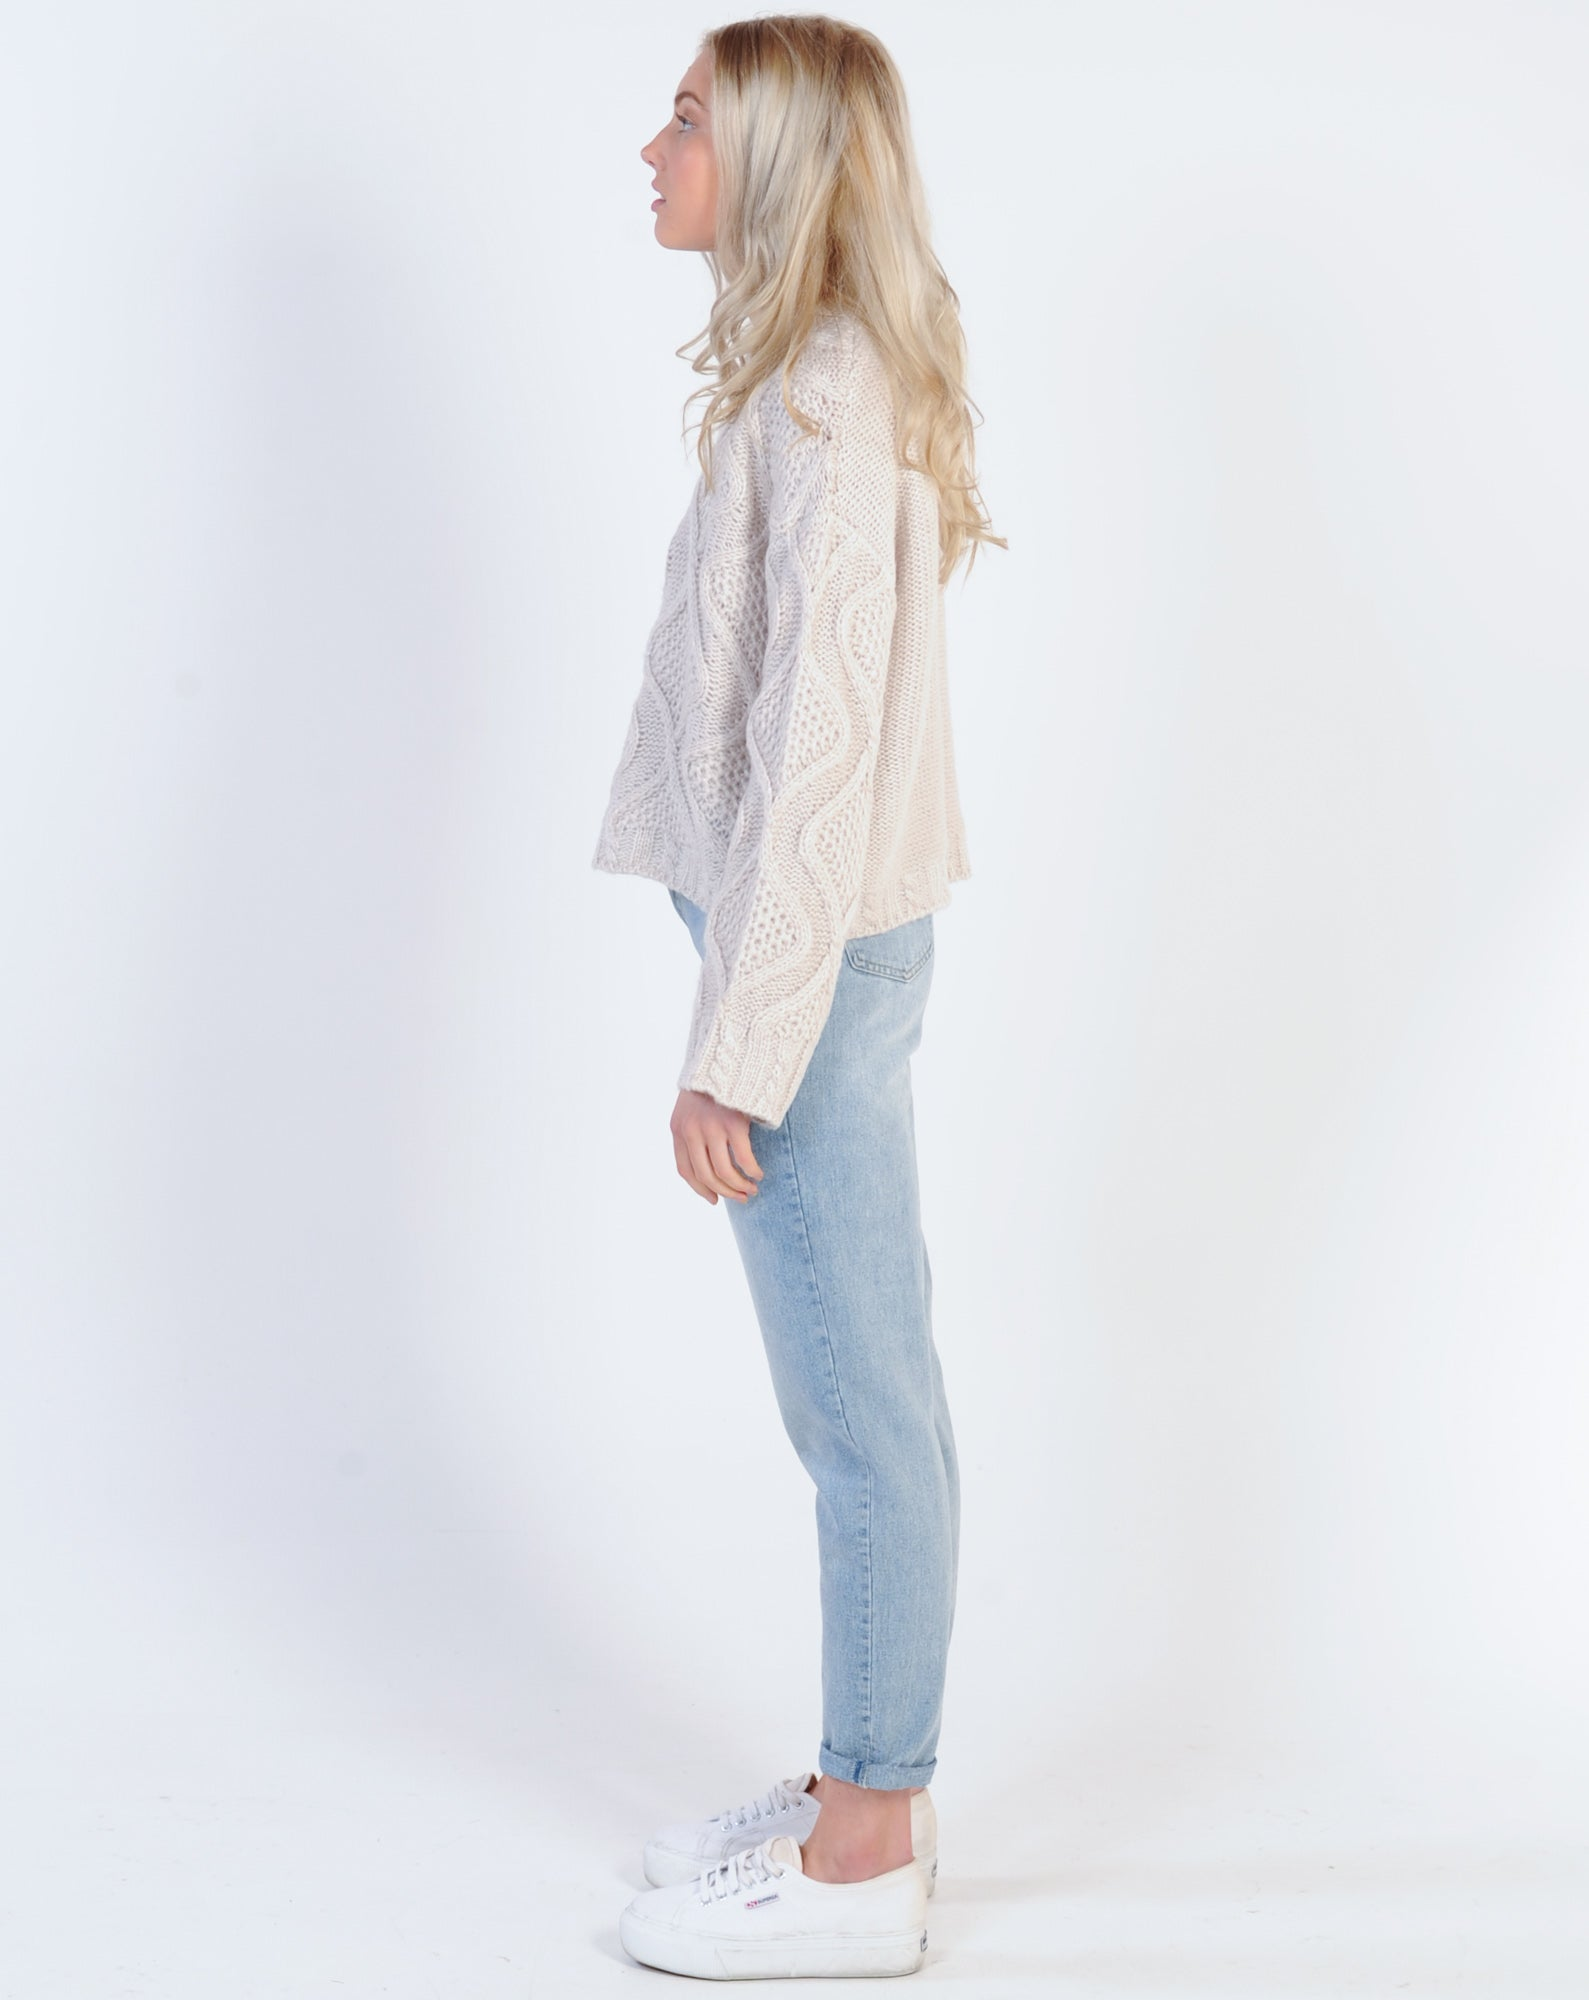 Madison The Label Silvi Mom Jean - Denim